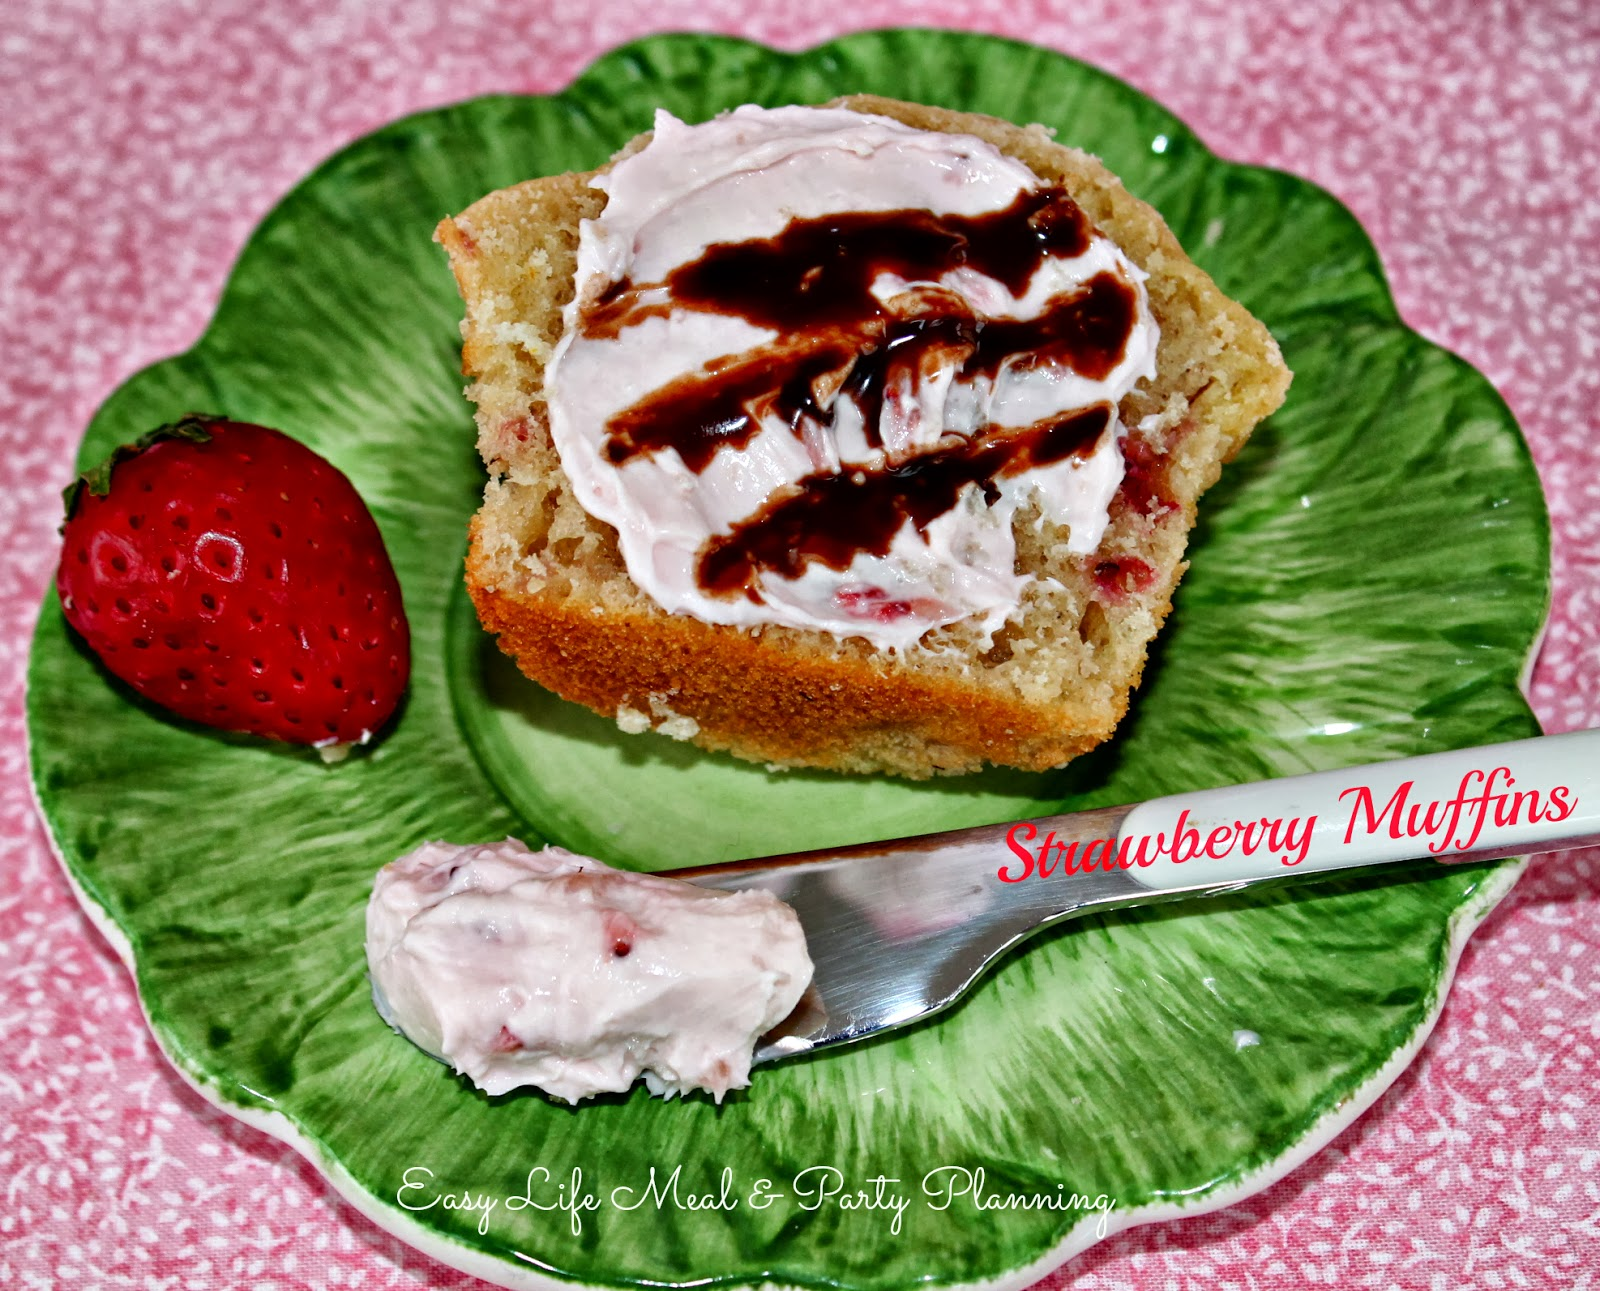 Strawberry Muffins - Easy Life Meal & Party Planning - Delicious served w